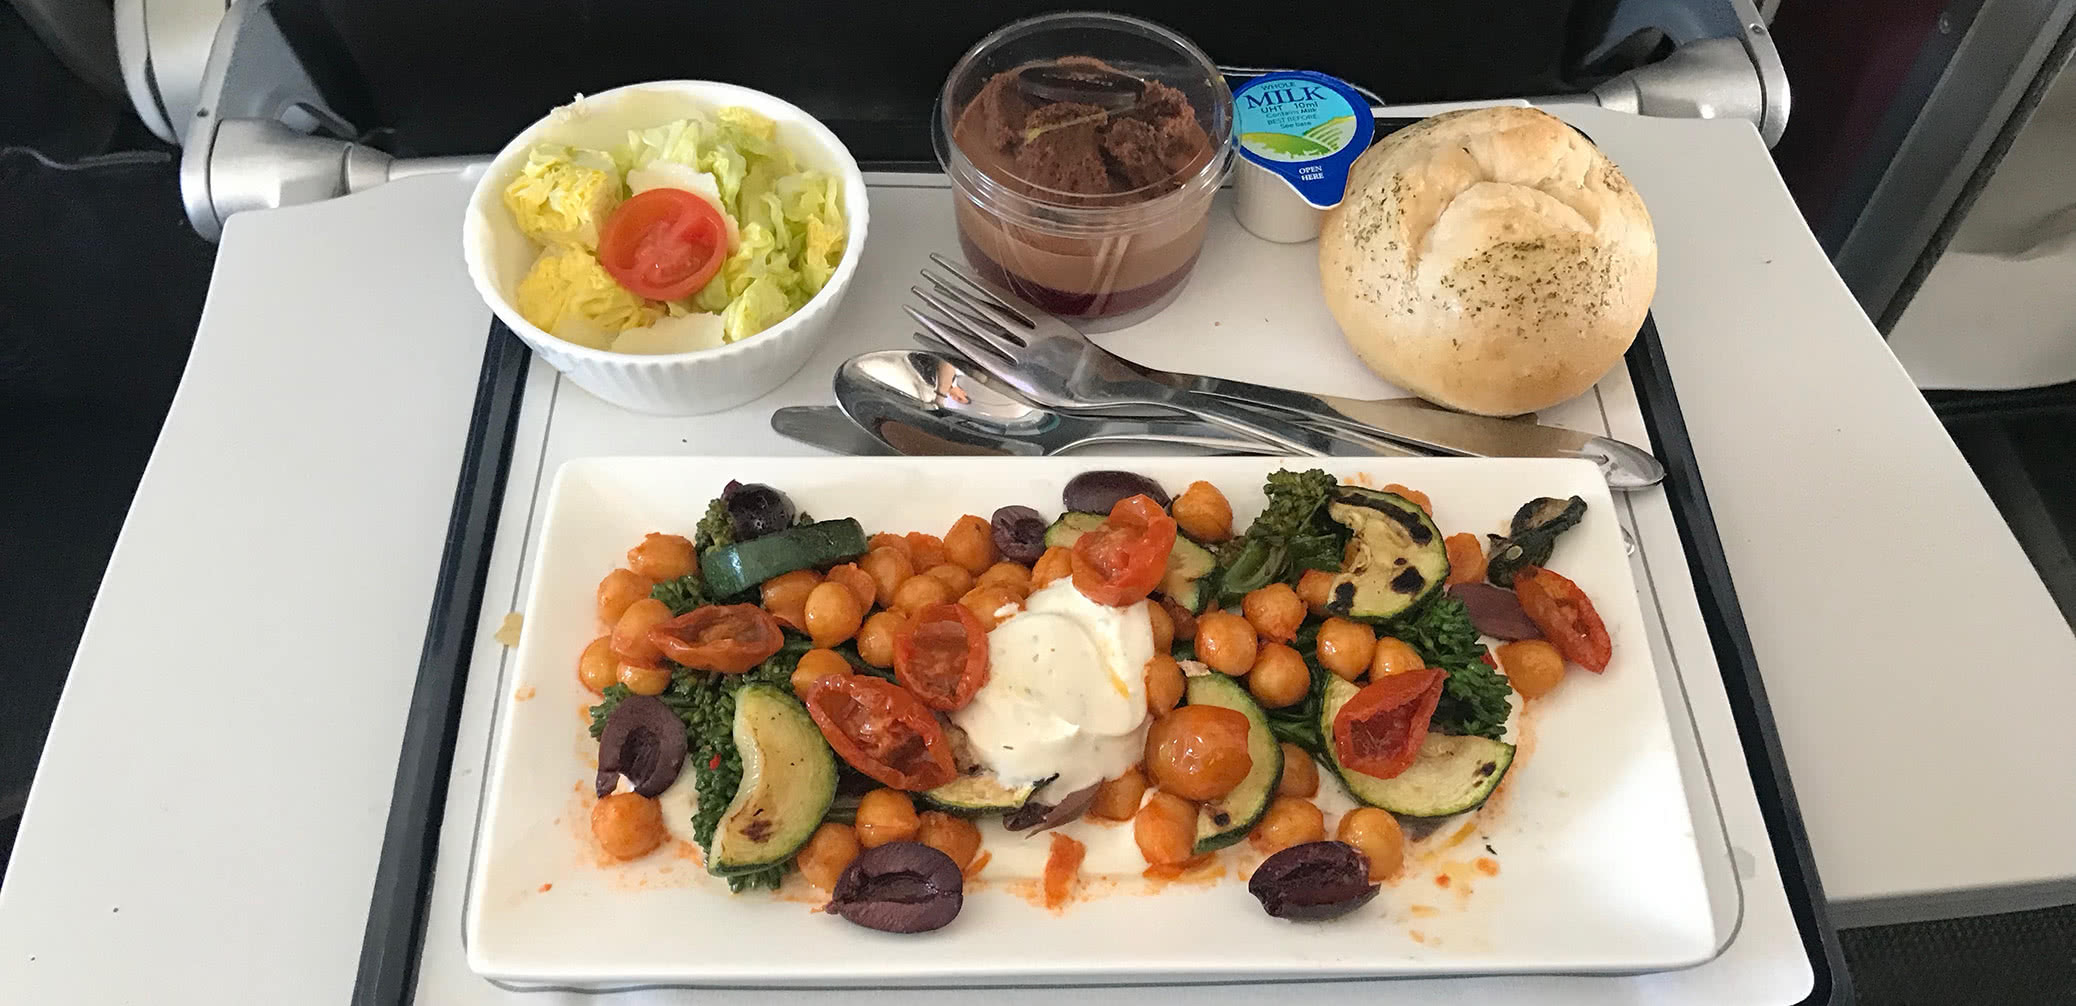 Only One North American Airline Offers a Delicious Domestic Inflight Meal